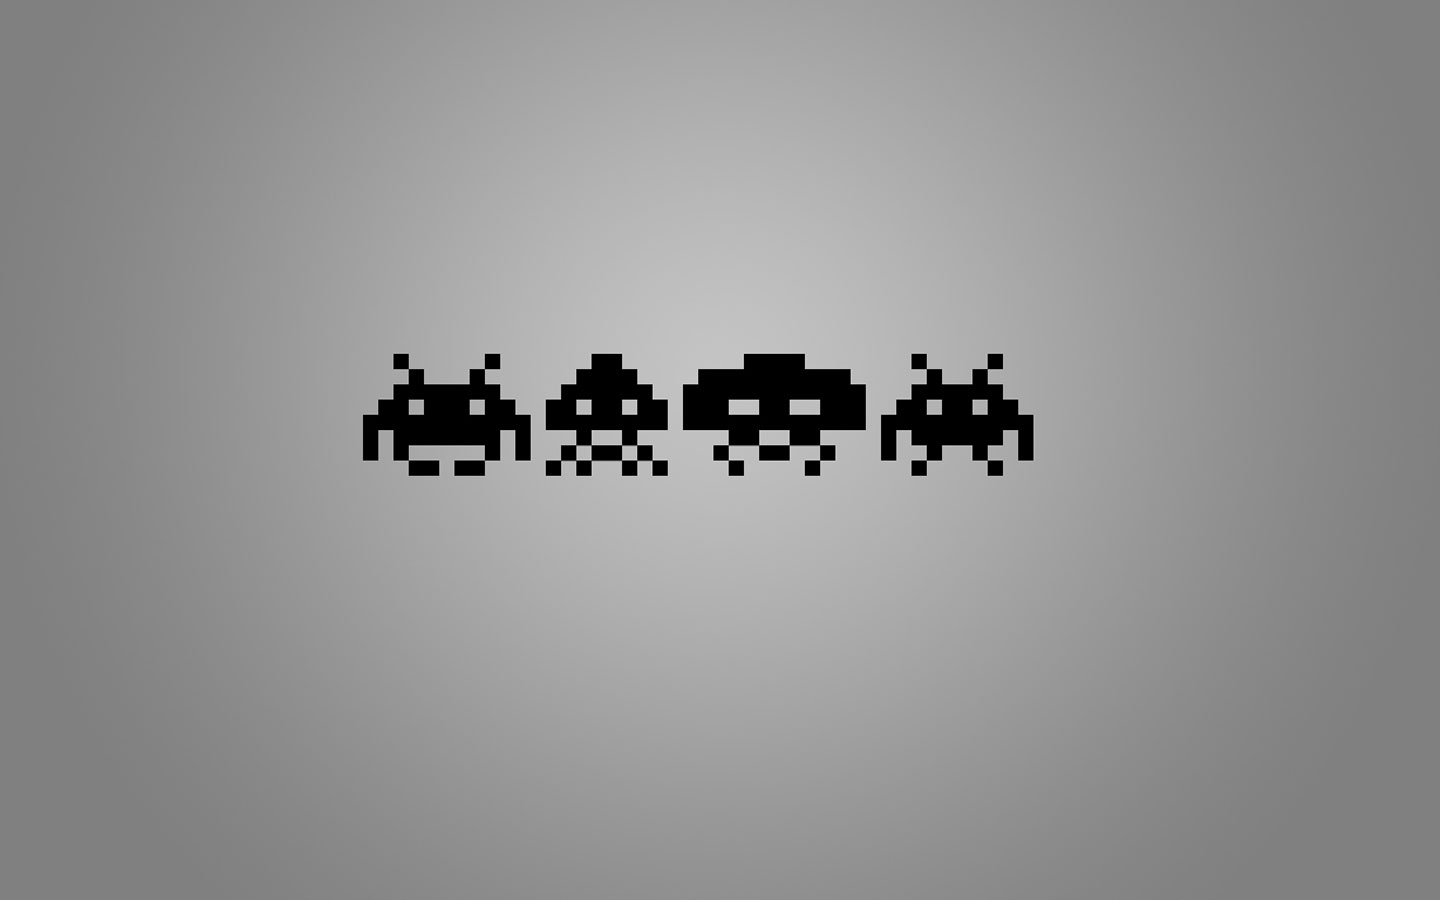 space invaders backgrounds A1